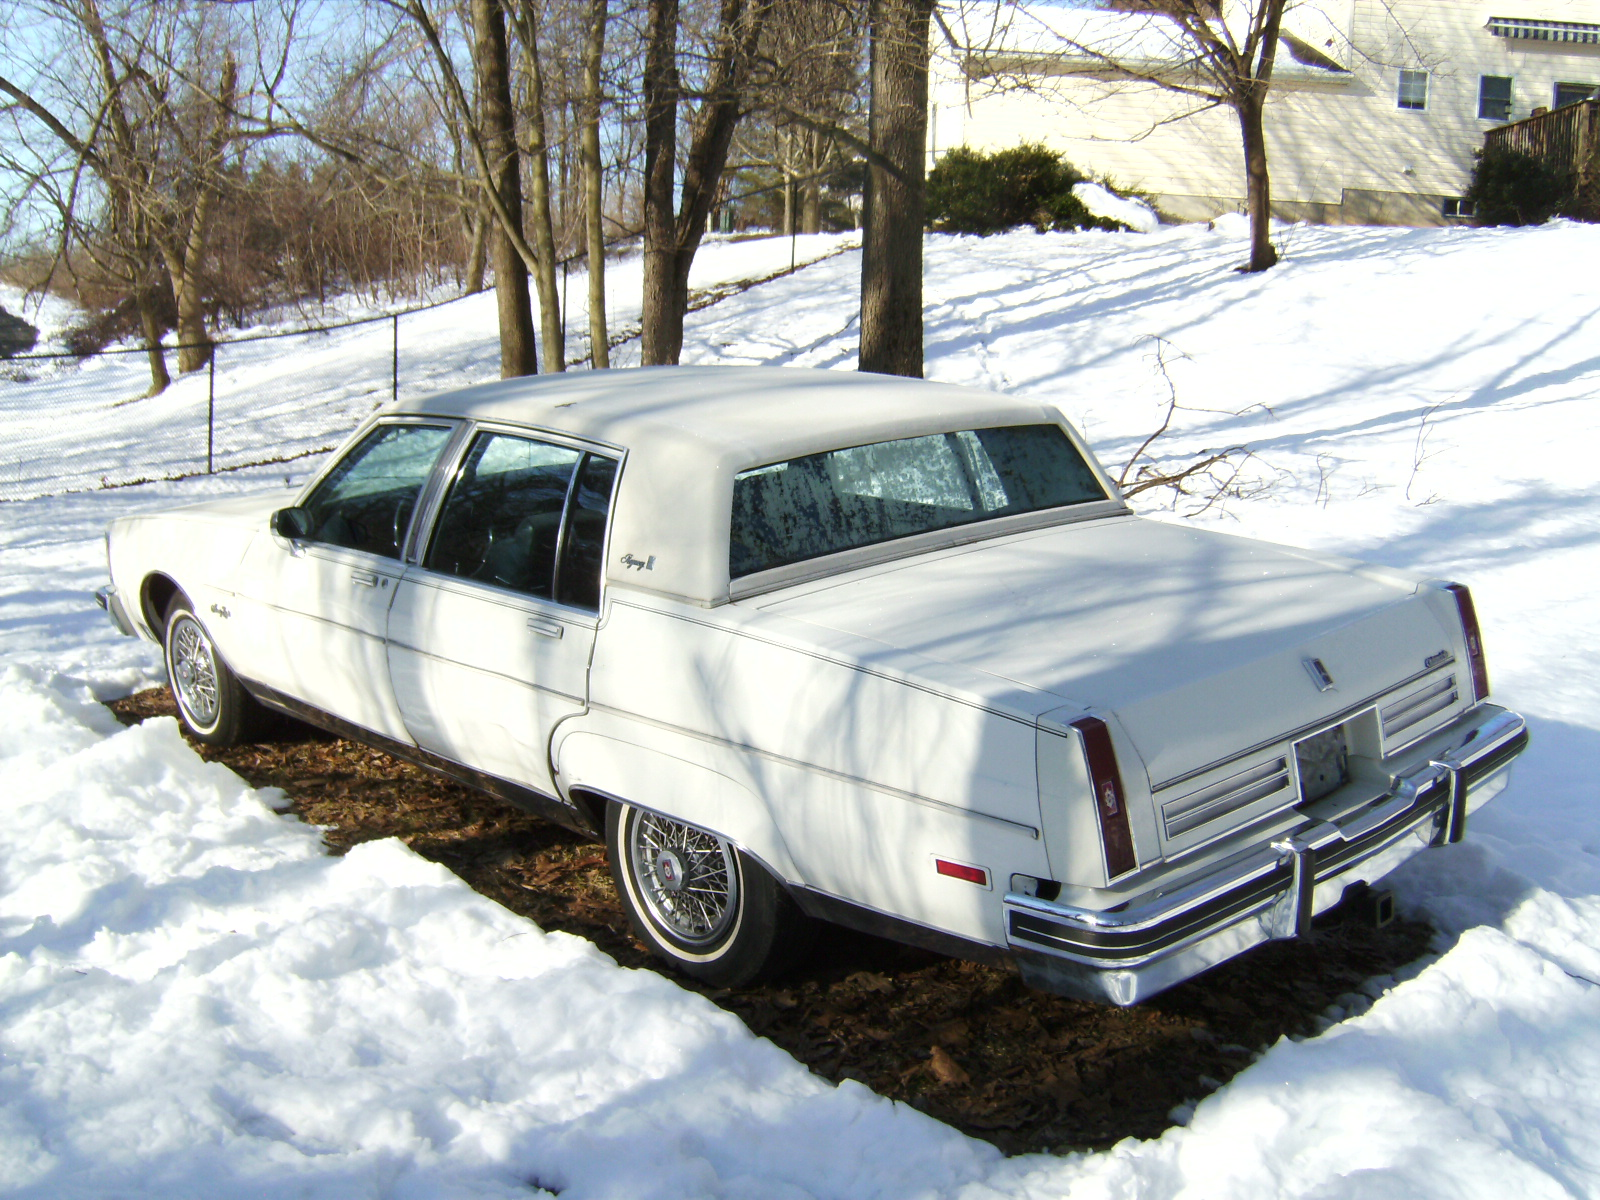 Road Trip Classic 1978 Cadillac Sedan Deville Across The Great 4 Door Guess It Would Be A Different Story As You Mentioned With Braking And What Not My 98 Far Outhandles 65 F 85 Daily Driver Despite Having